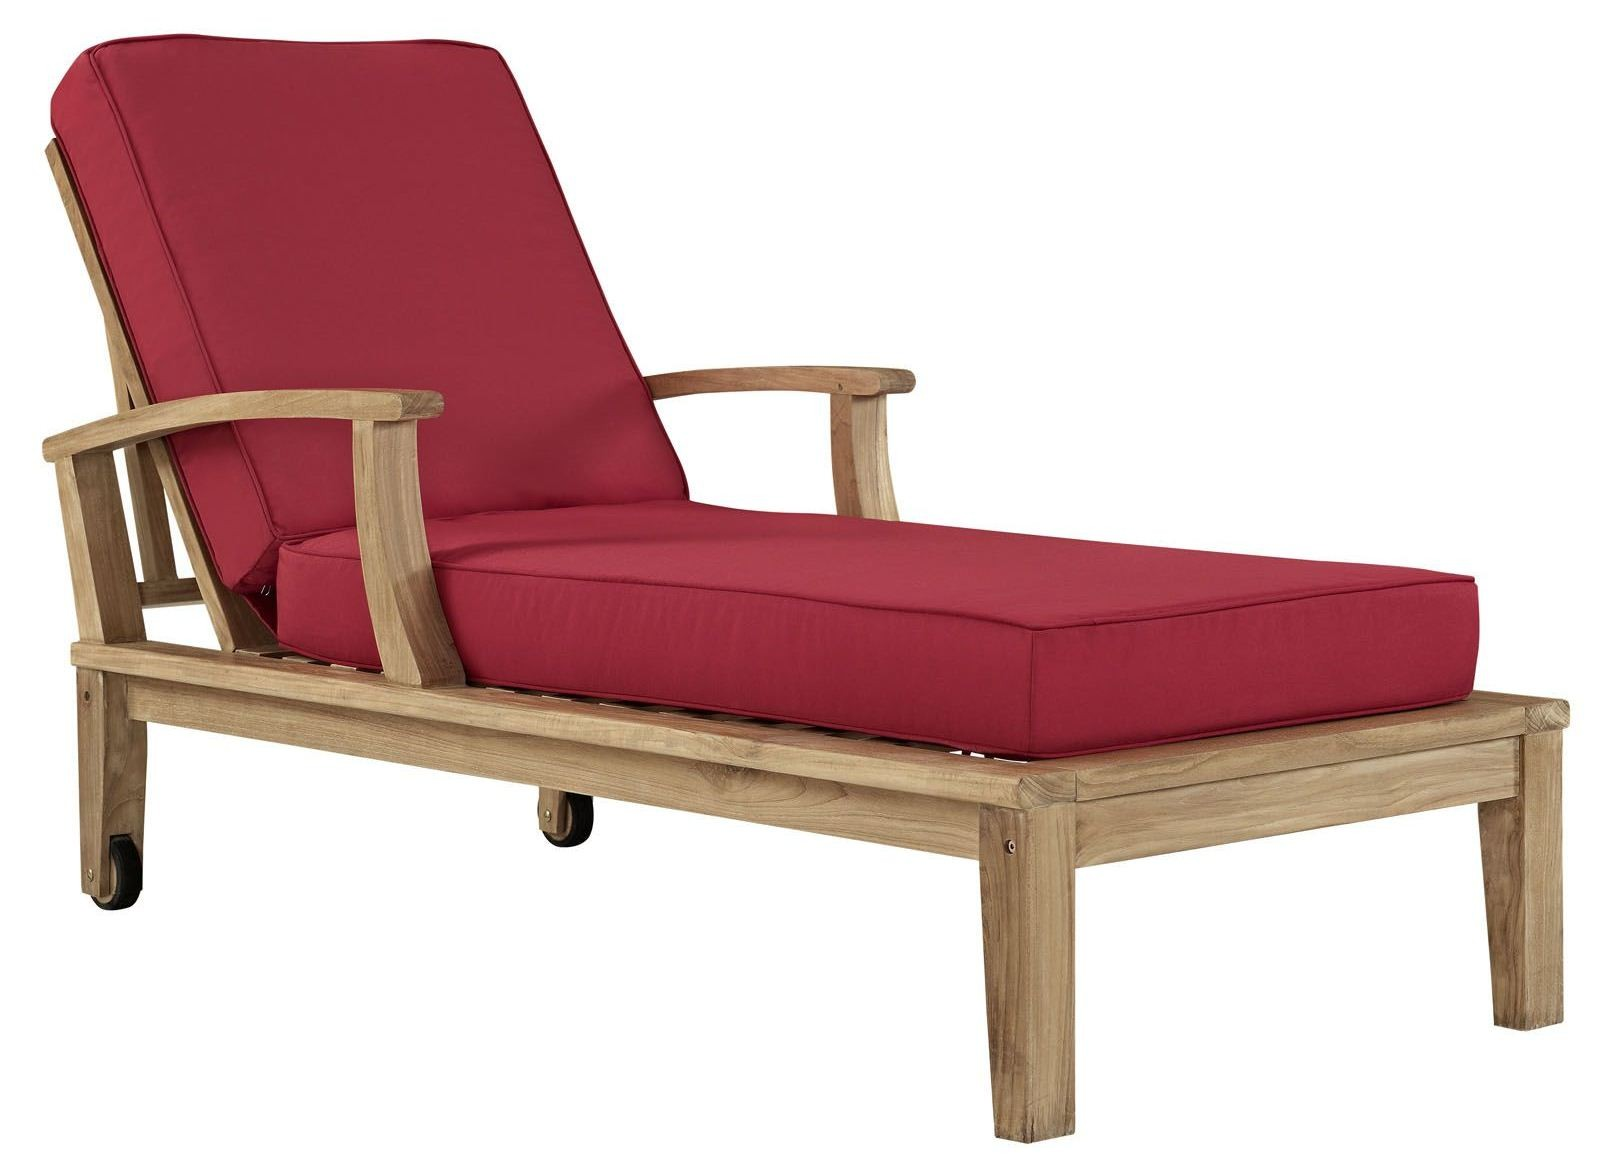 Marina Natural Red Outdoor Patio Teak Single Chaise From